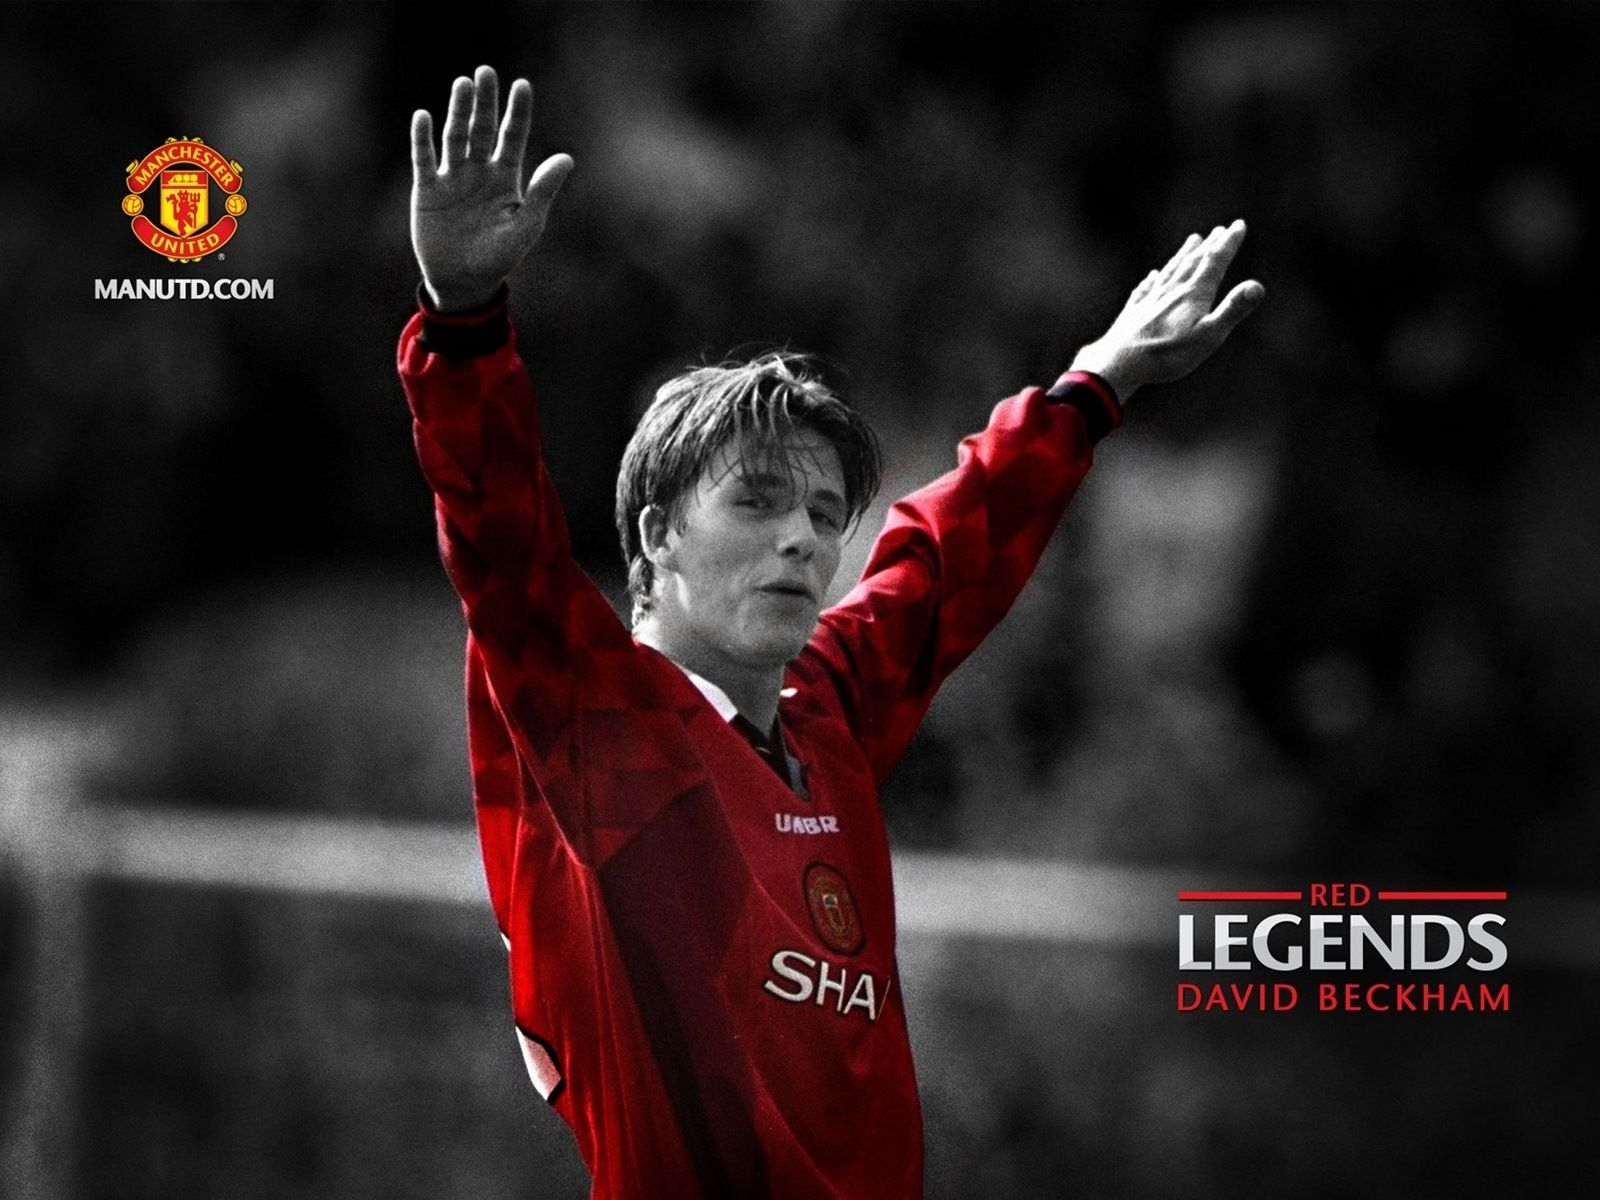 David Beckham Manchester United Wallpaper Football Hd Design 1600x1200 Pixel With Images David Beckham Manchester United David Beckham Manchester United